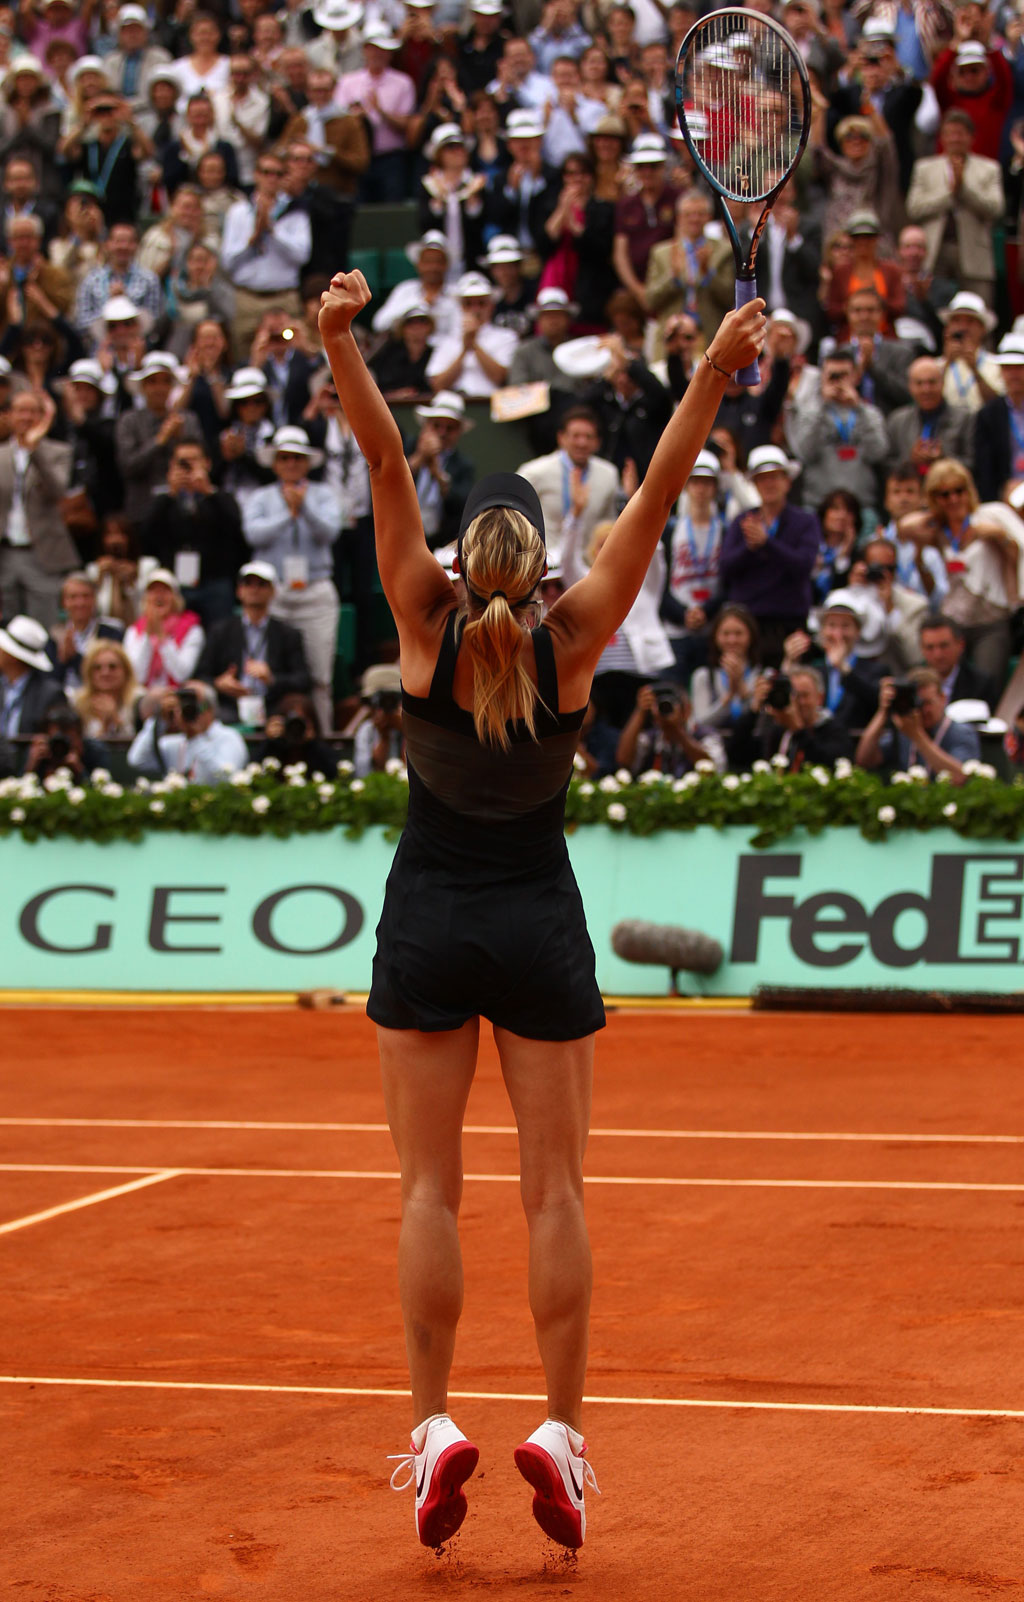 Maria Sharapova of Russia leaps in the air as she celebrates victory in the women's singles final against Sara Errani of Italy during day 14 of the French Open at Roland Garros